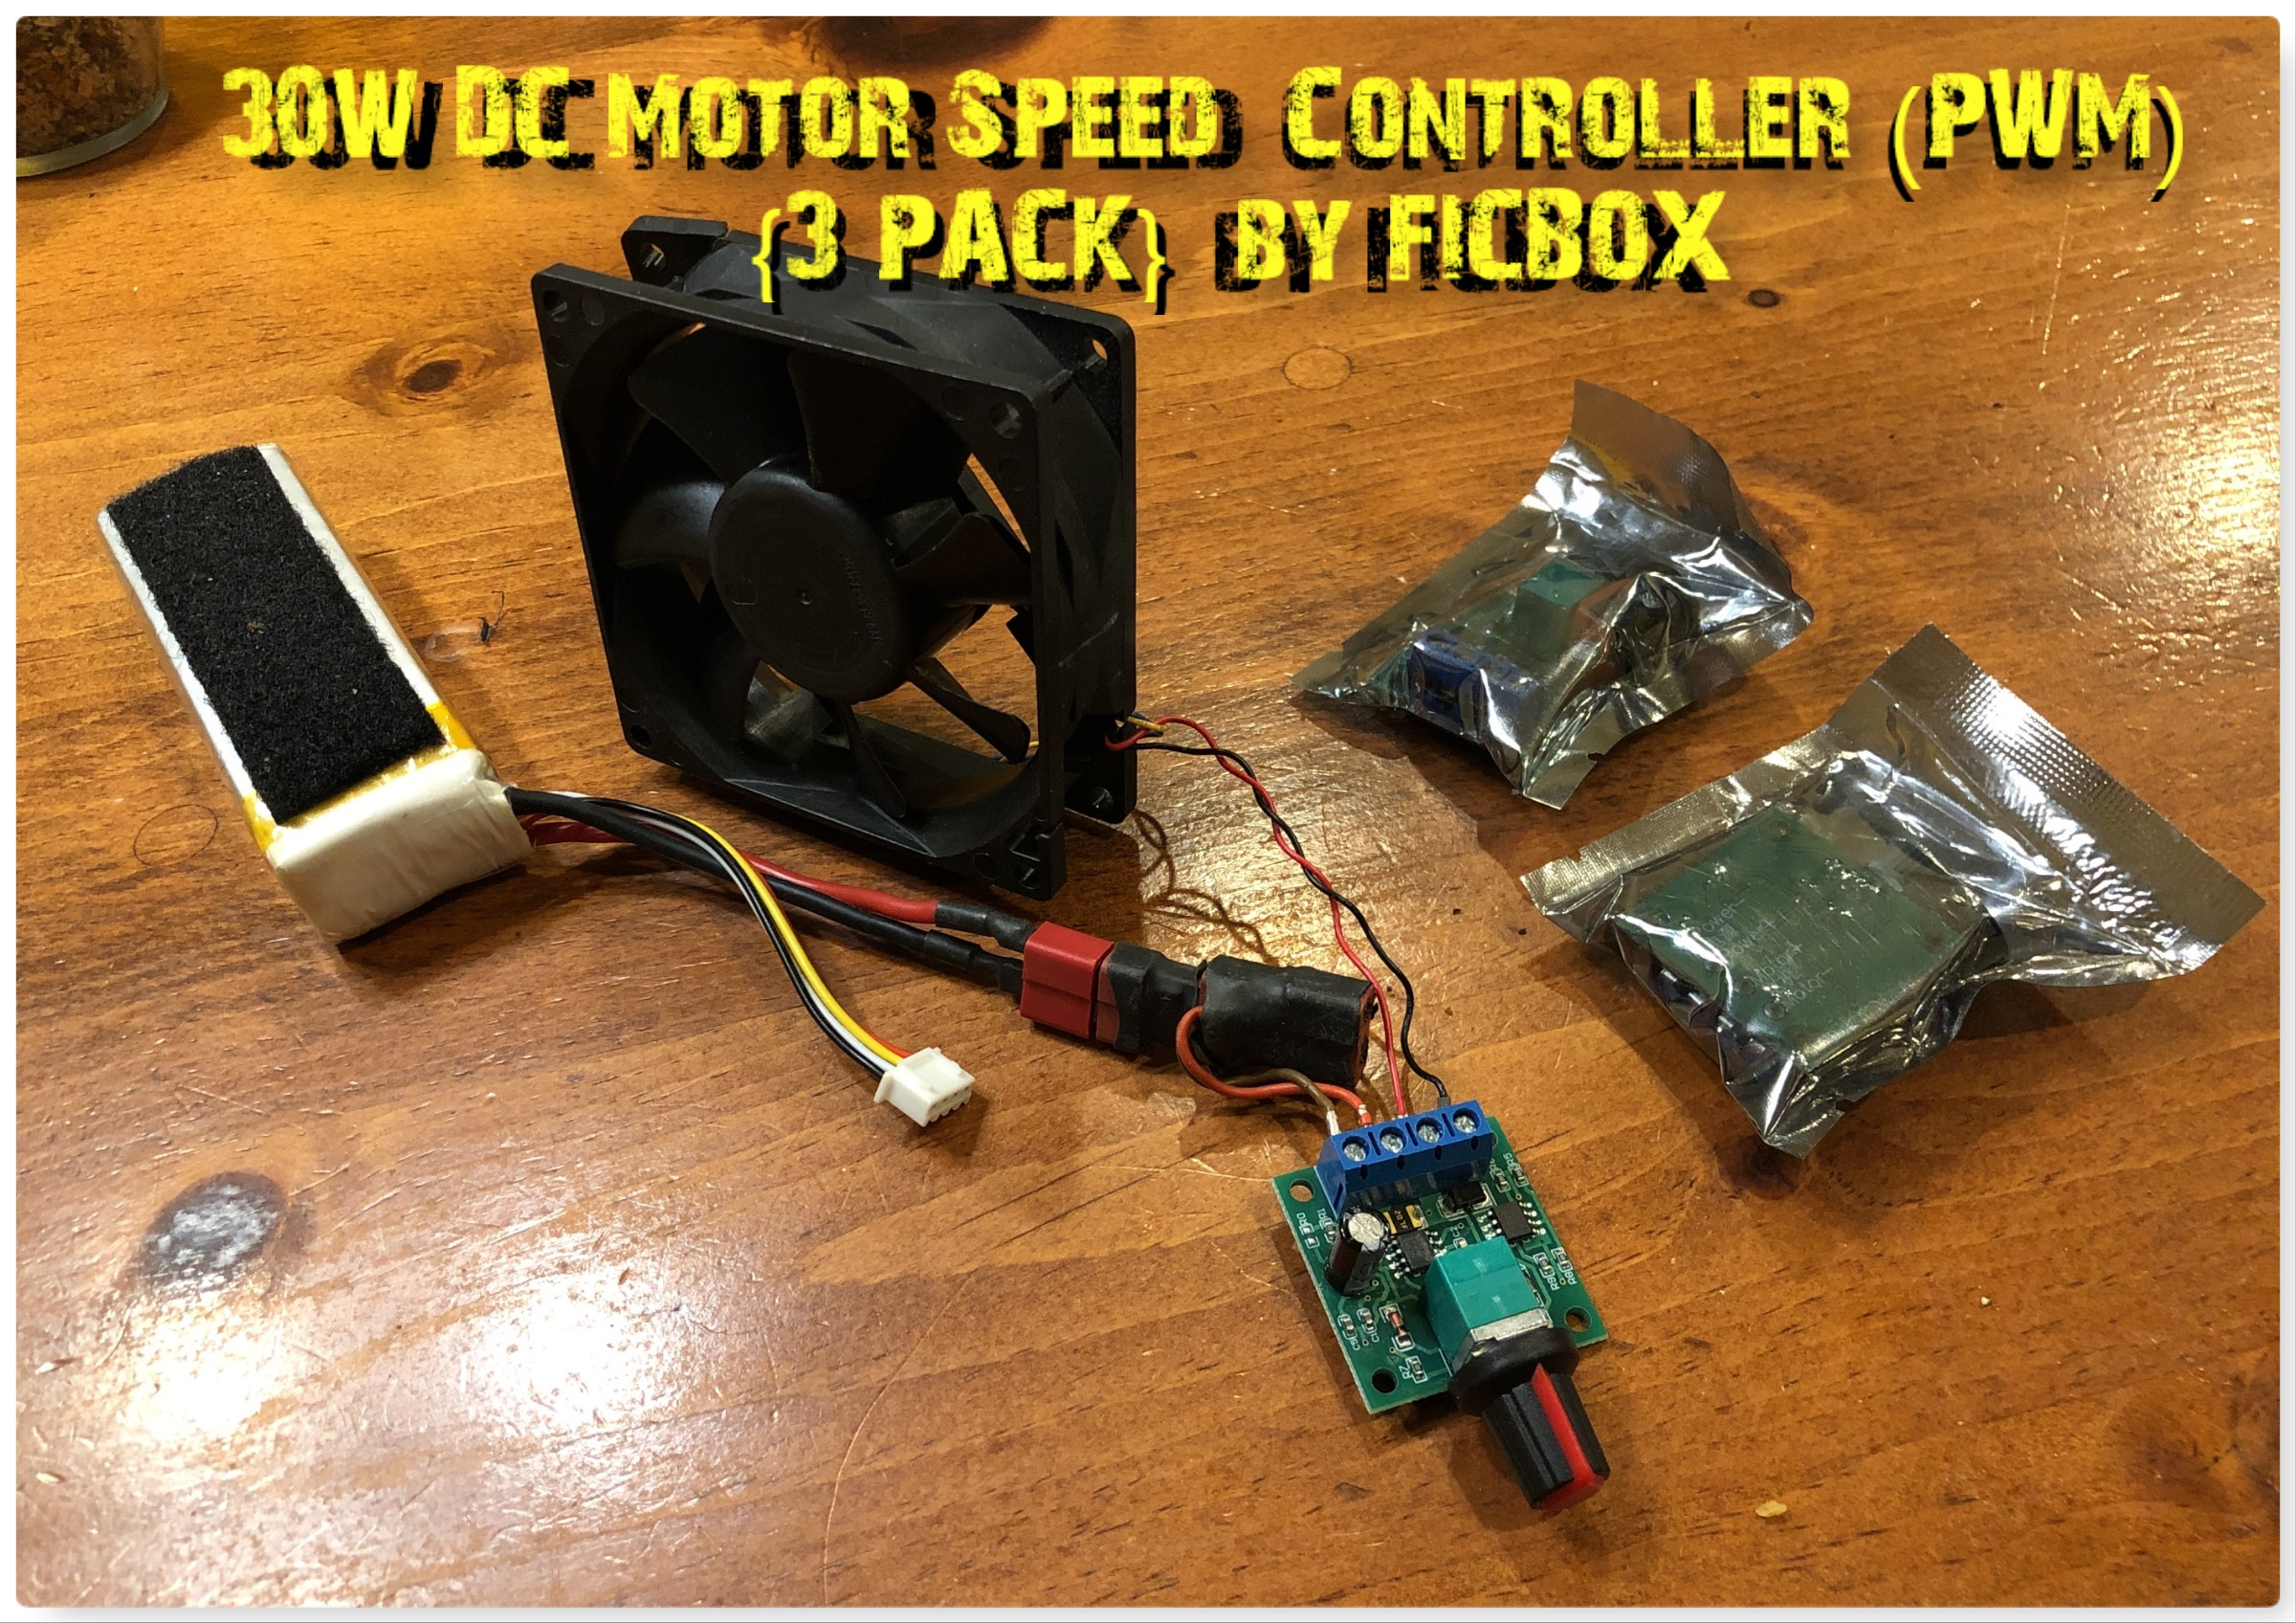 Great variable speed controller for electronic projects!